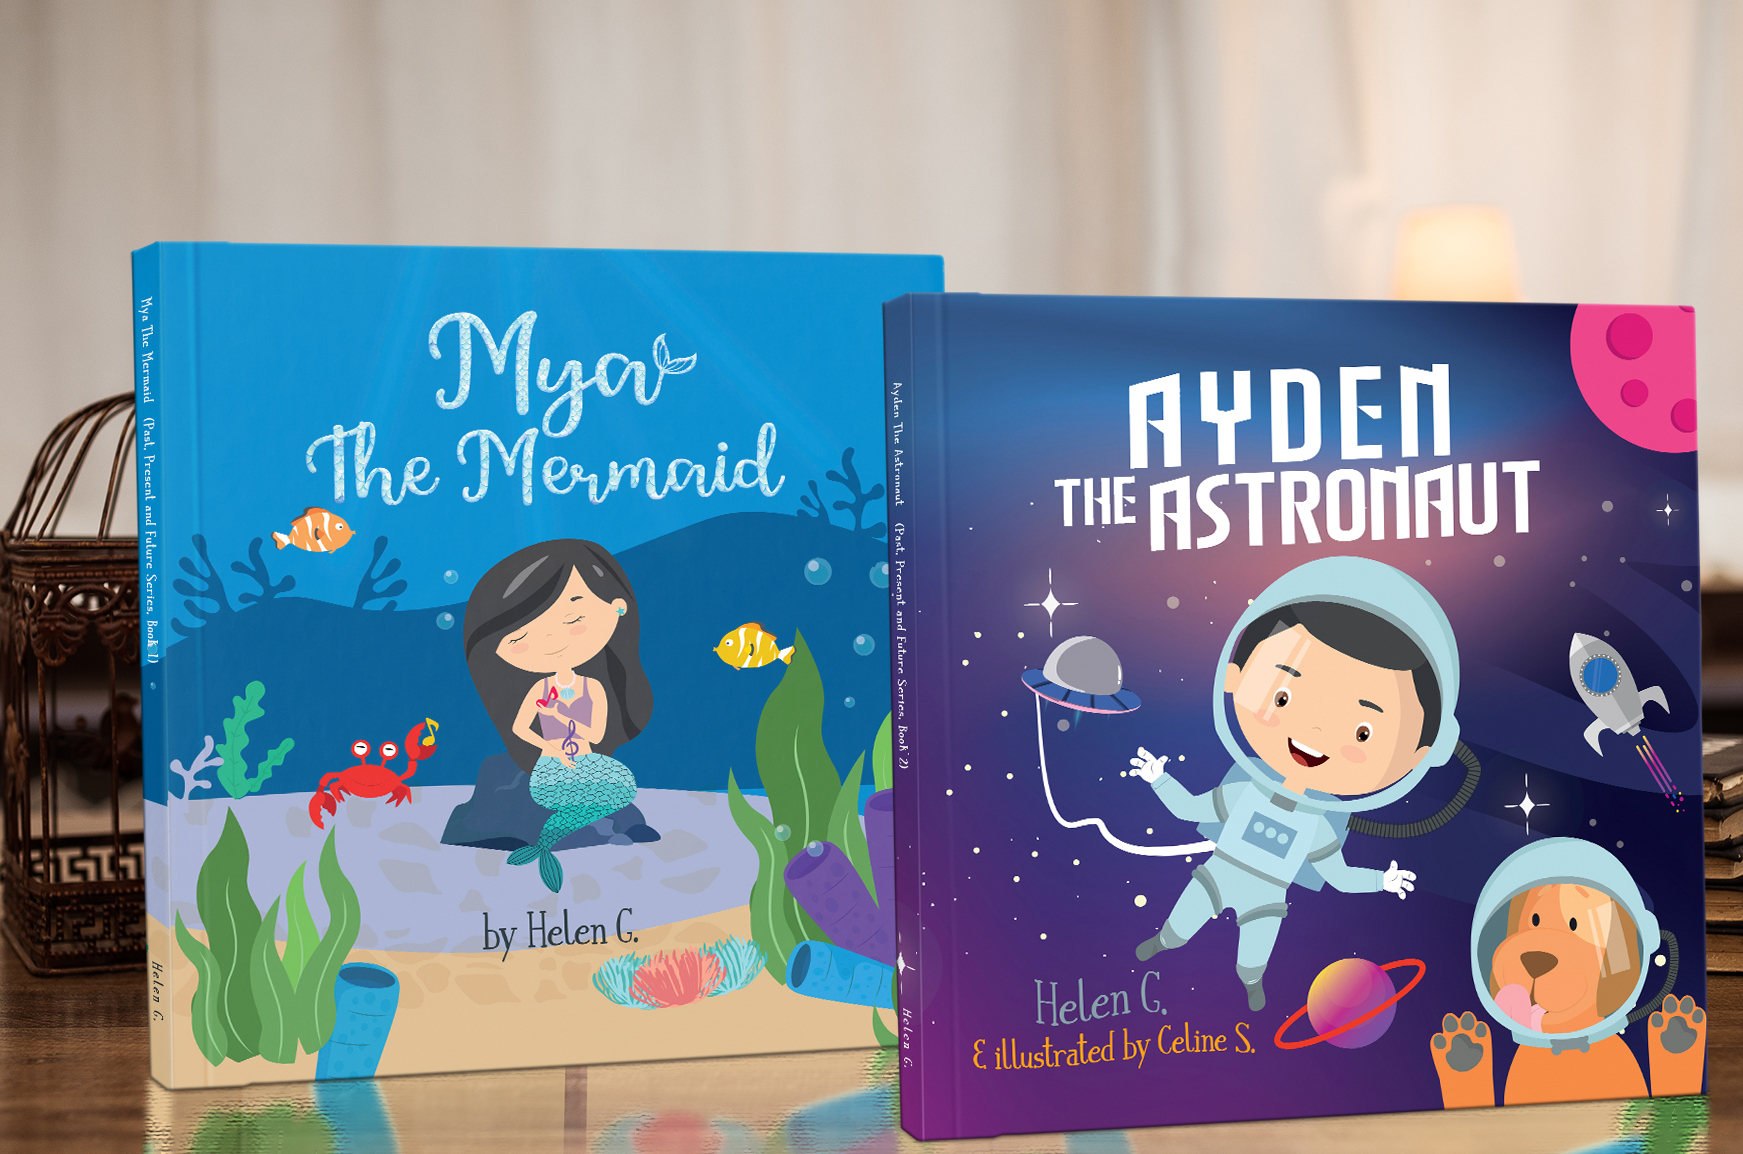 Author Helen G. Raises Awareness on Global Issues with Inspirational Picture Book Series for Children